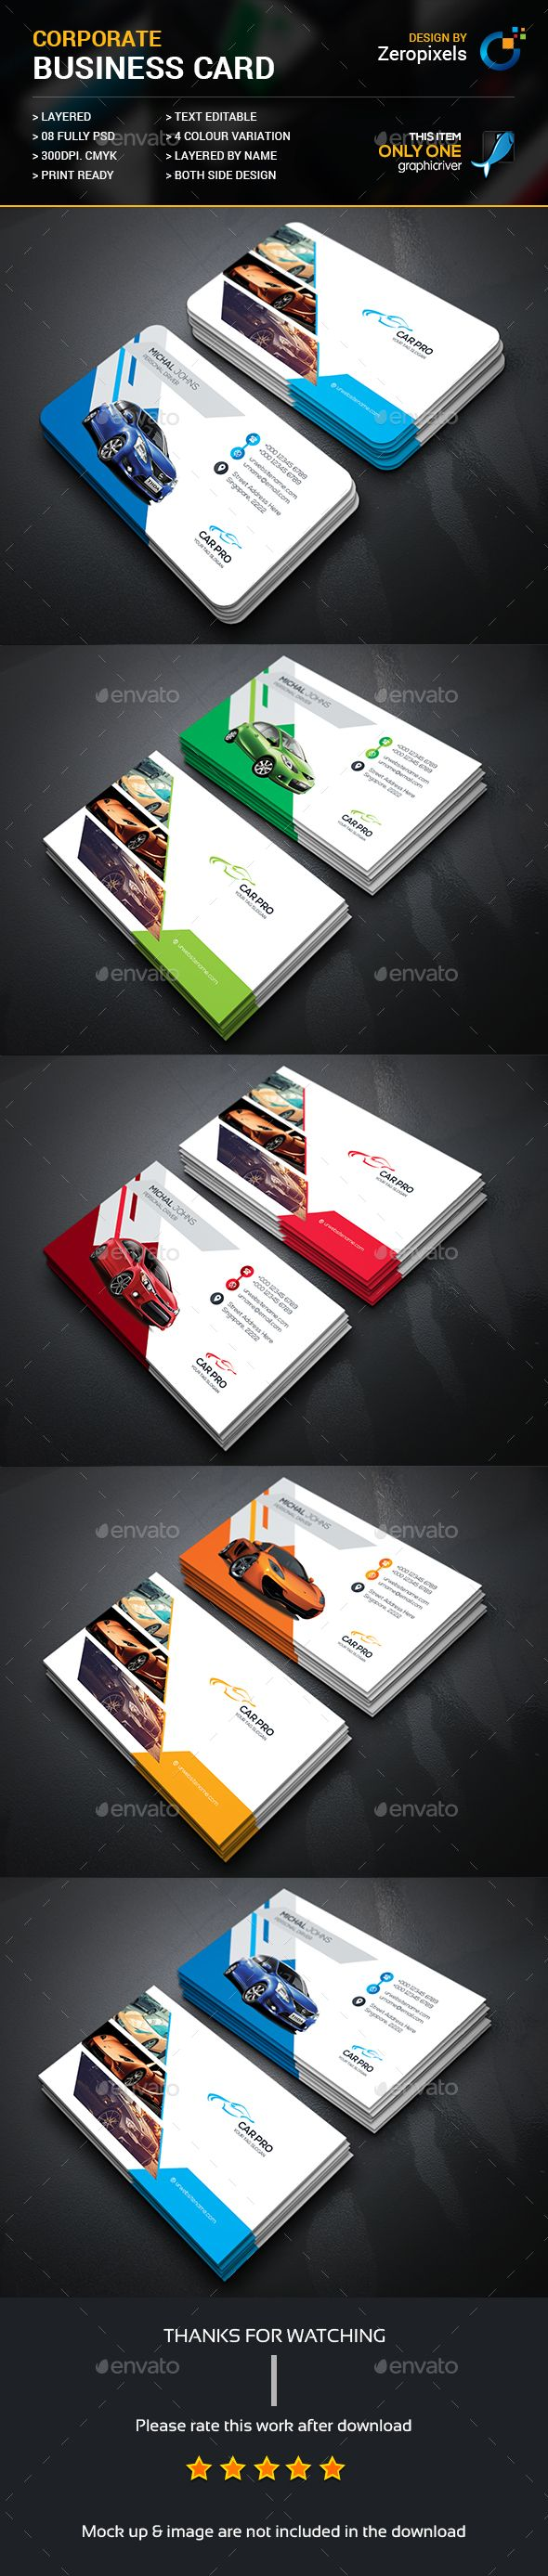 Best Business Cards Images On Pinterest Visit Cards - Editable business card templates free